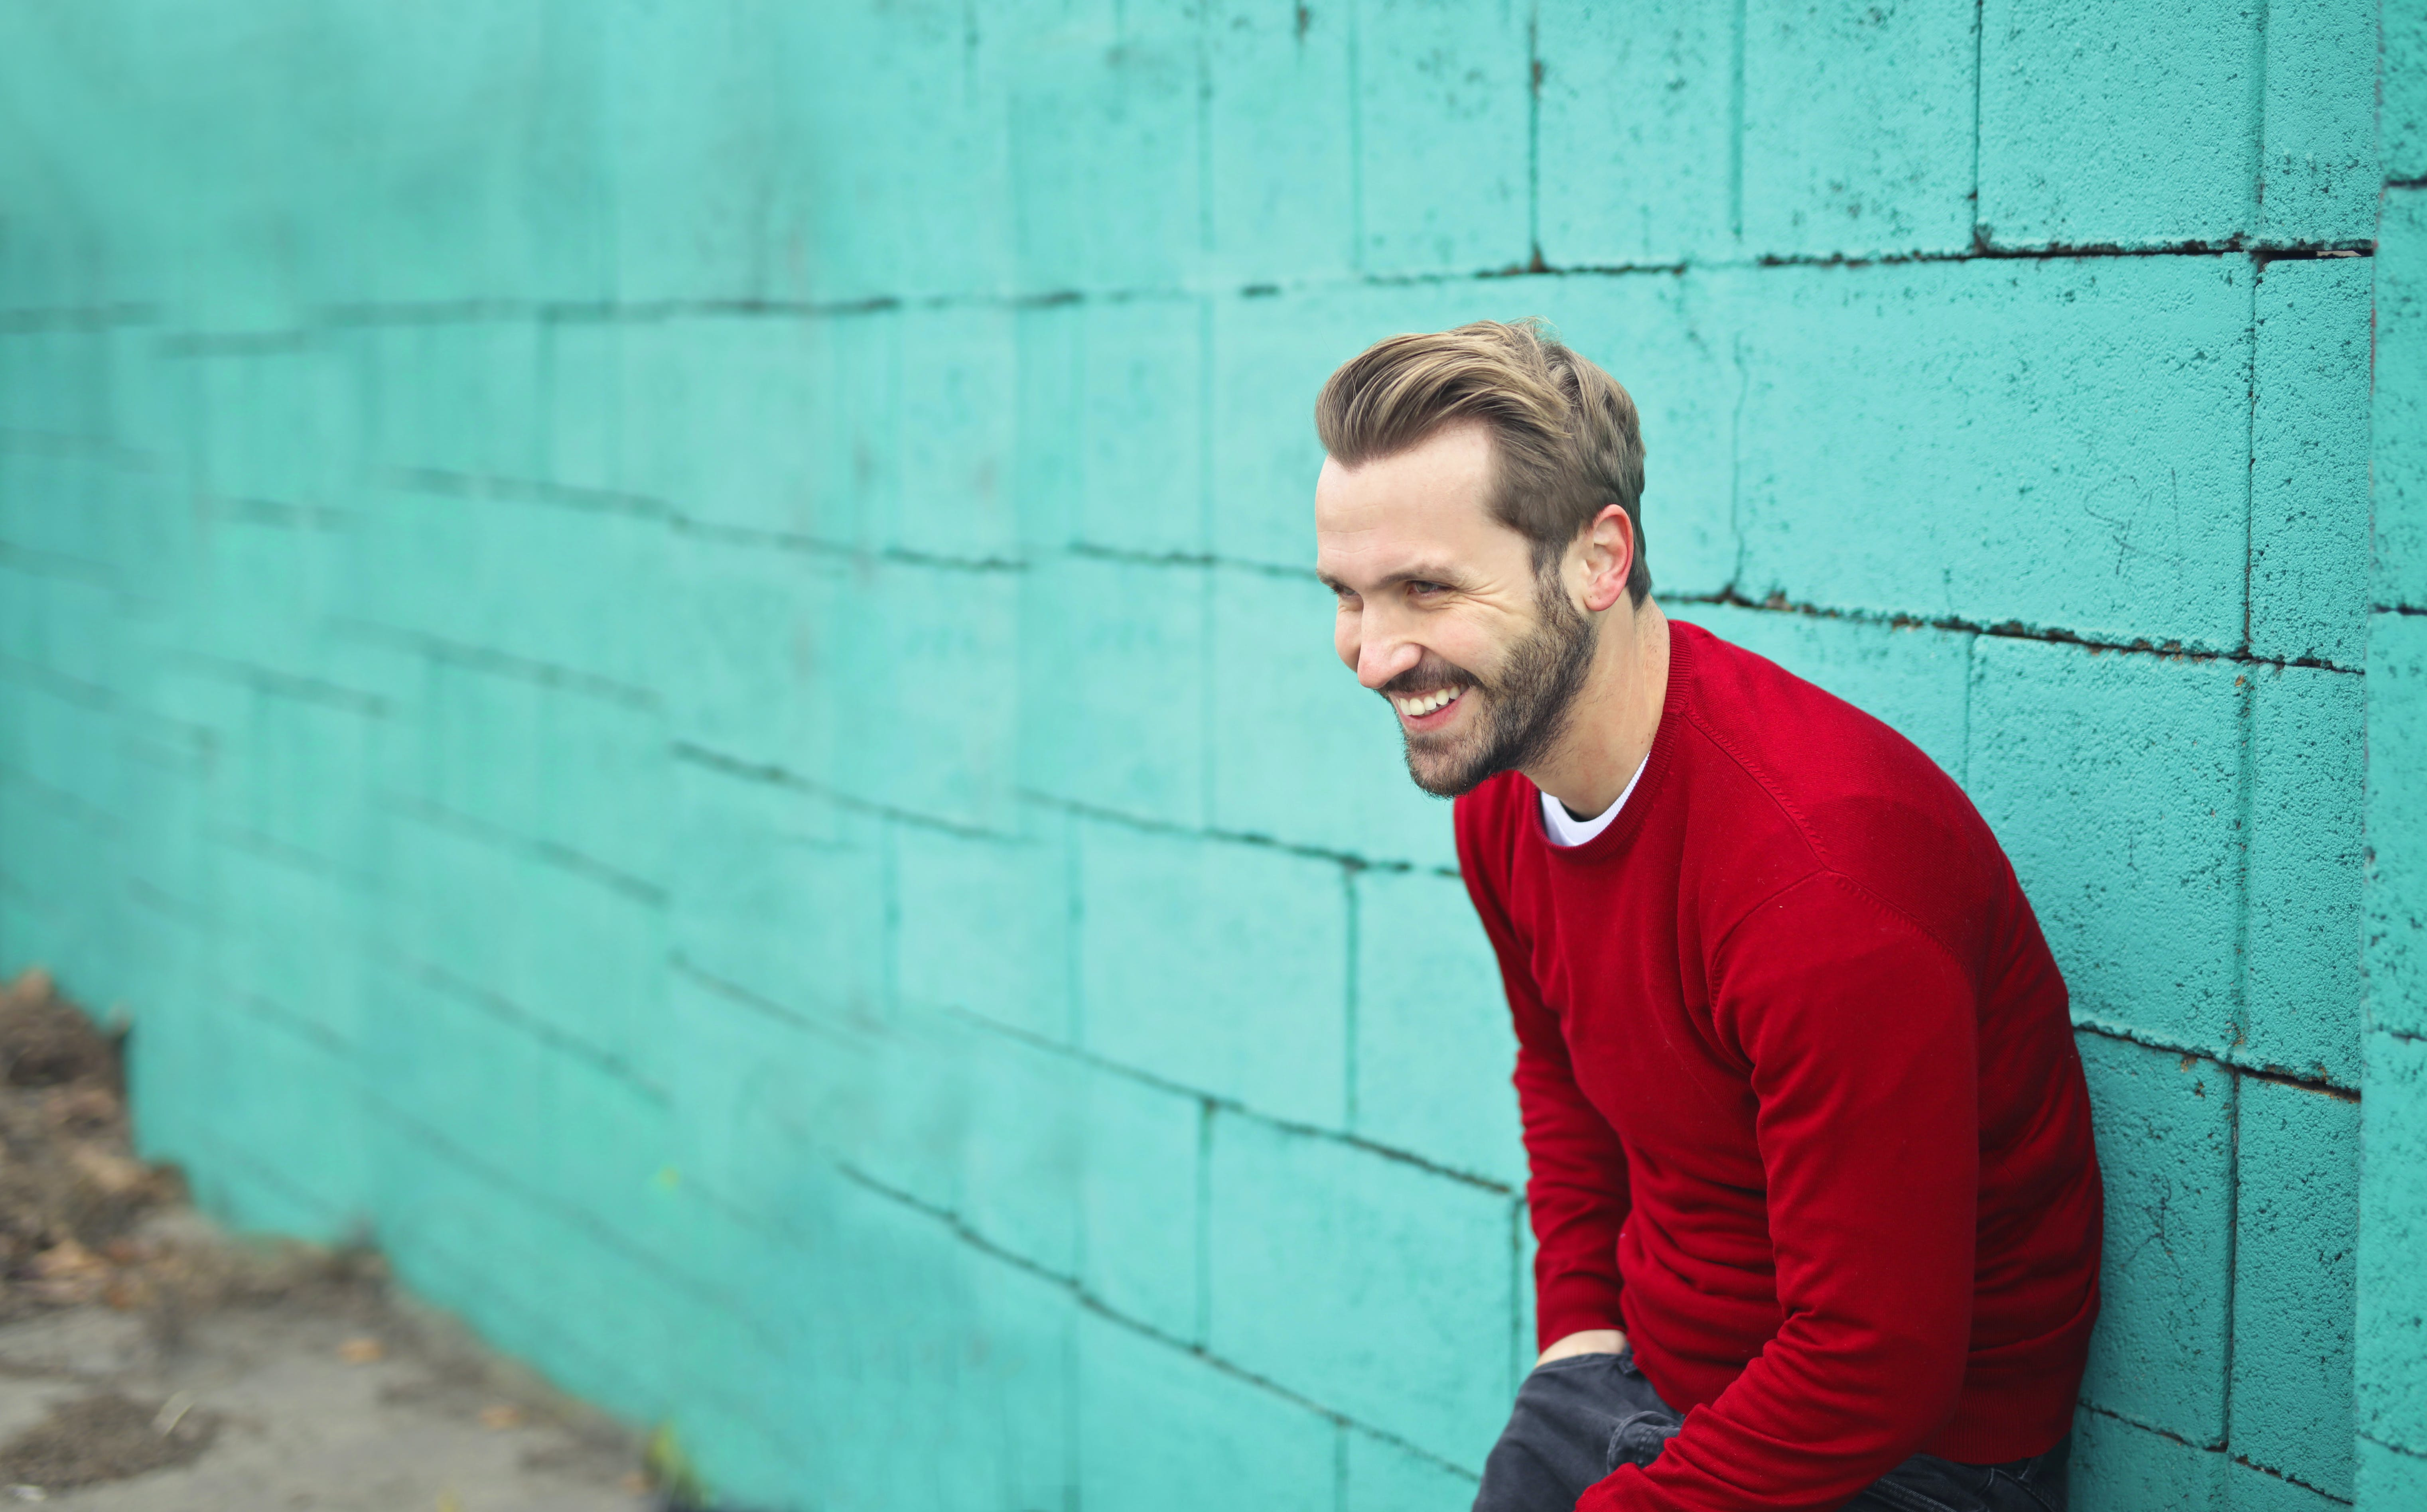 Man Wearing a Red Sweater Leaning on a Blue Wall